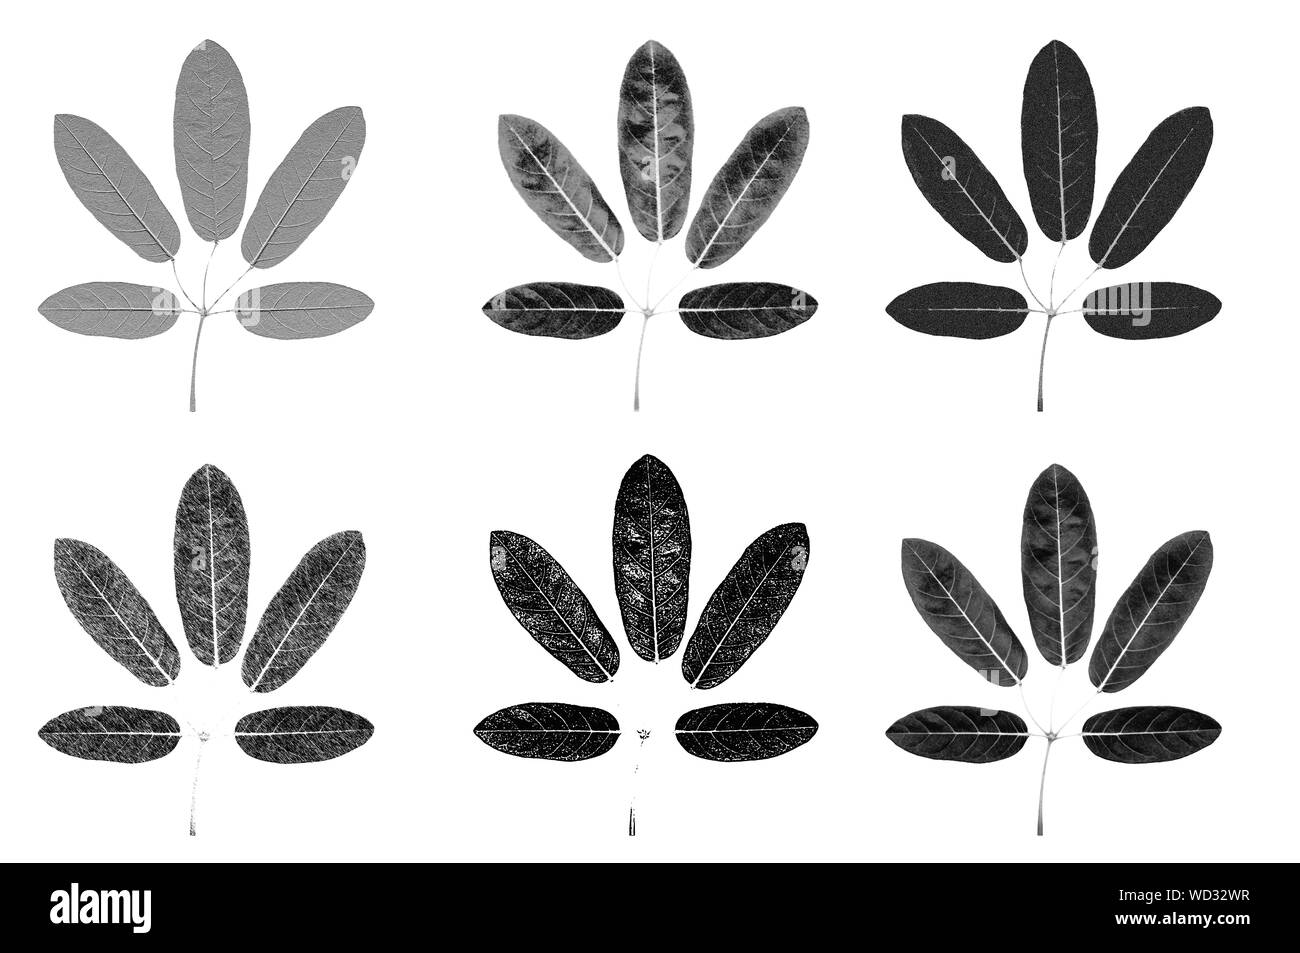 Five lobes leaves black and white skecth illustrate graphic with different texture detail isolated on white background Stock Photo